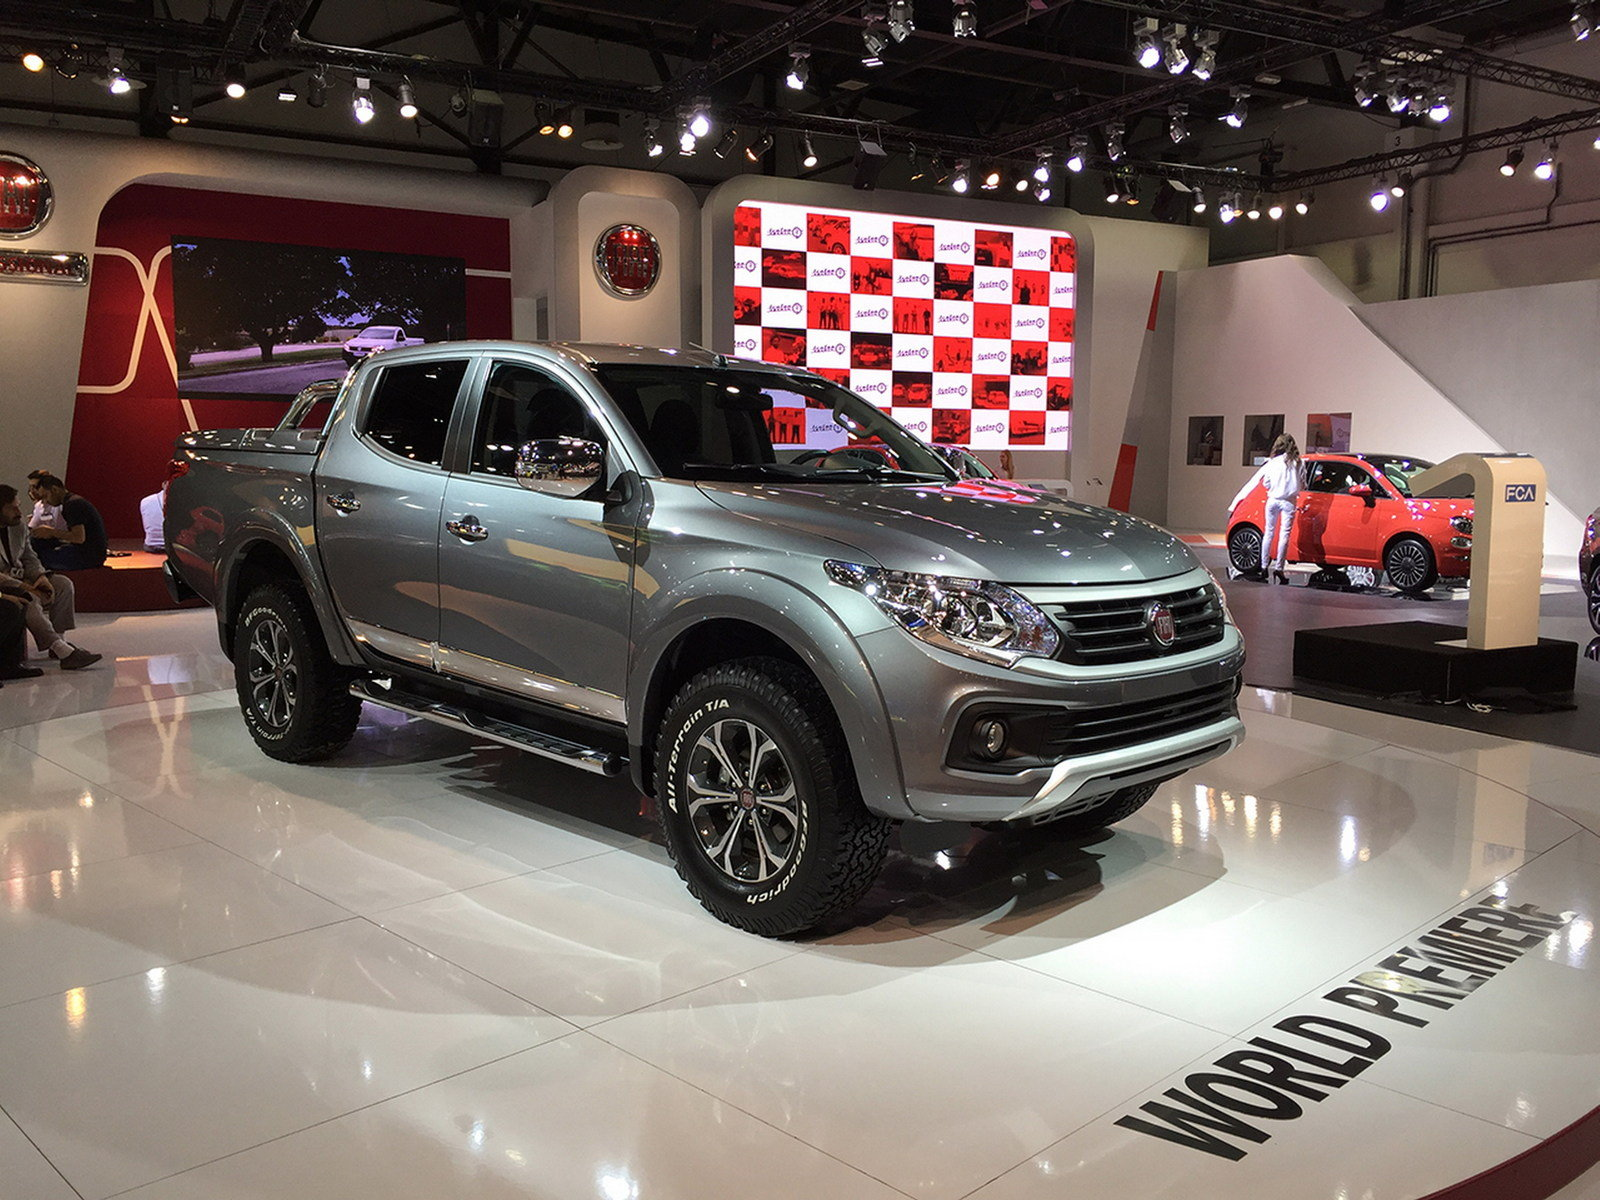 2016 fiat fullback picture 655233 truck review top speed. Black Bedroom Furniture Sets. Home Design Ideas